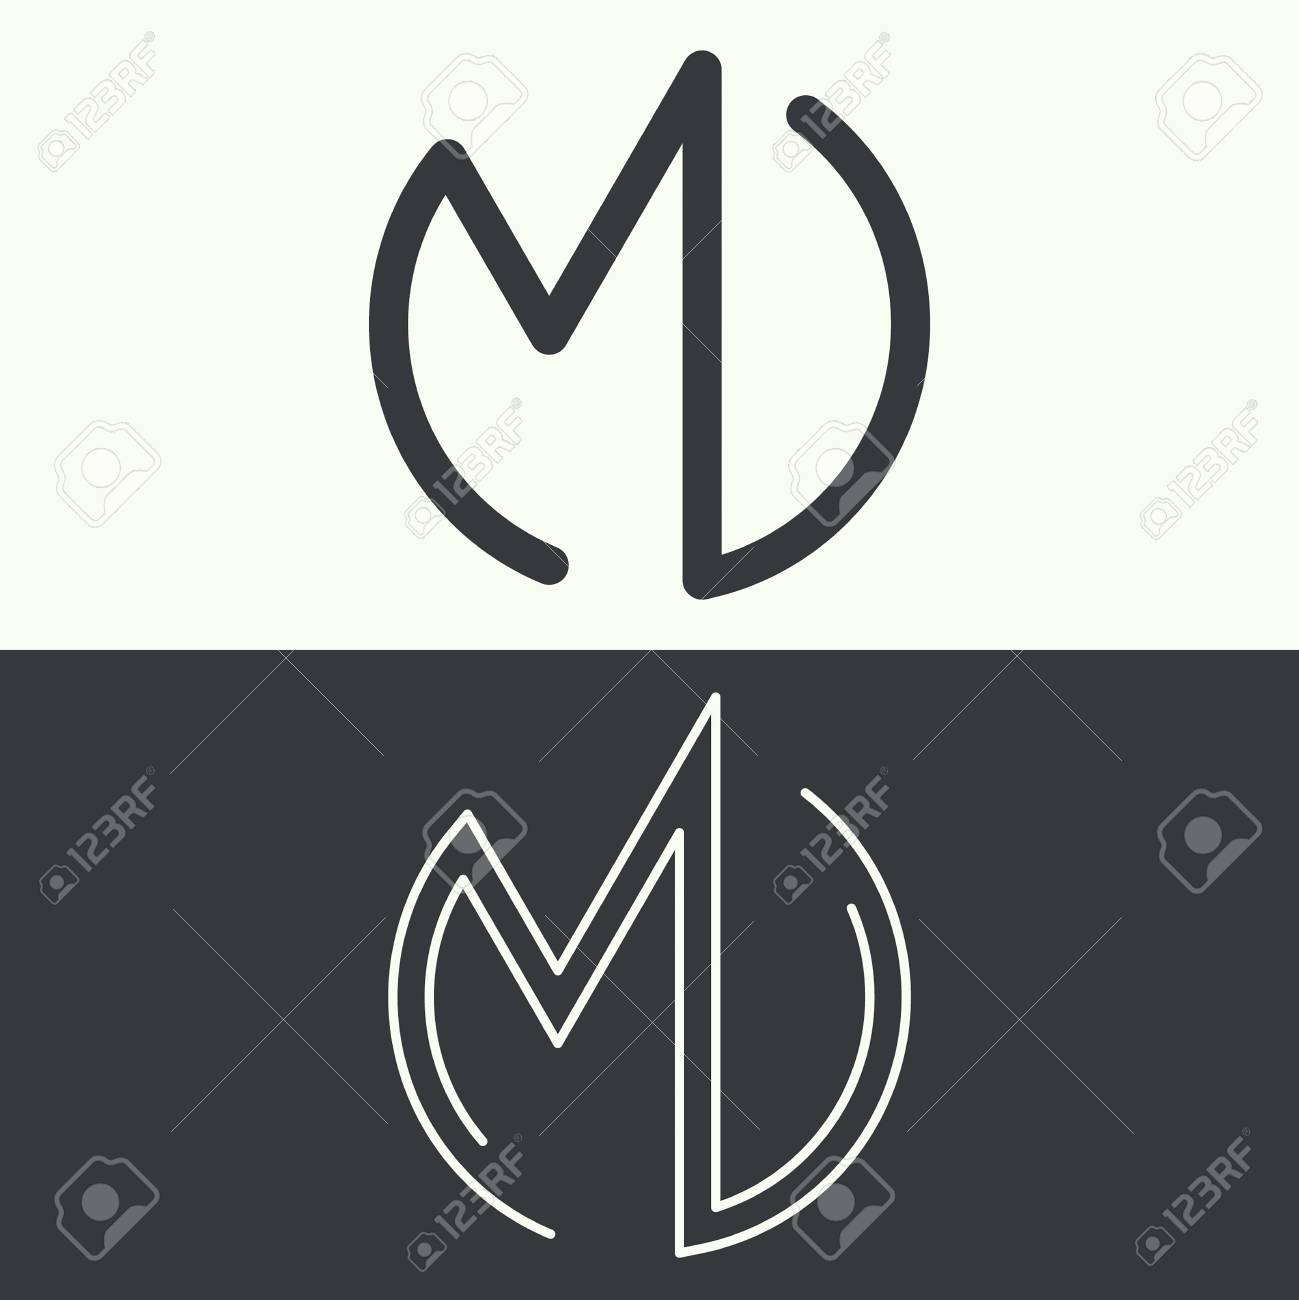 set of monograms of letters md logo simple linear style vector